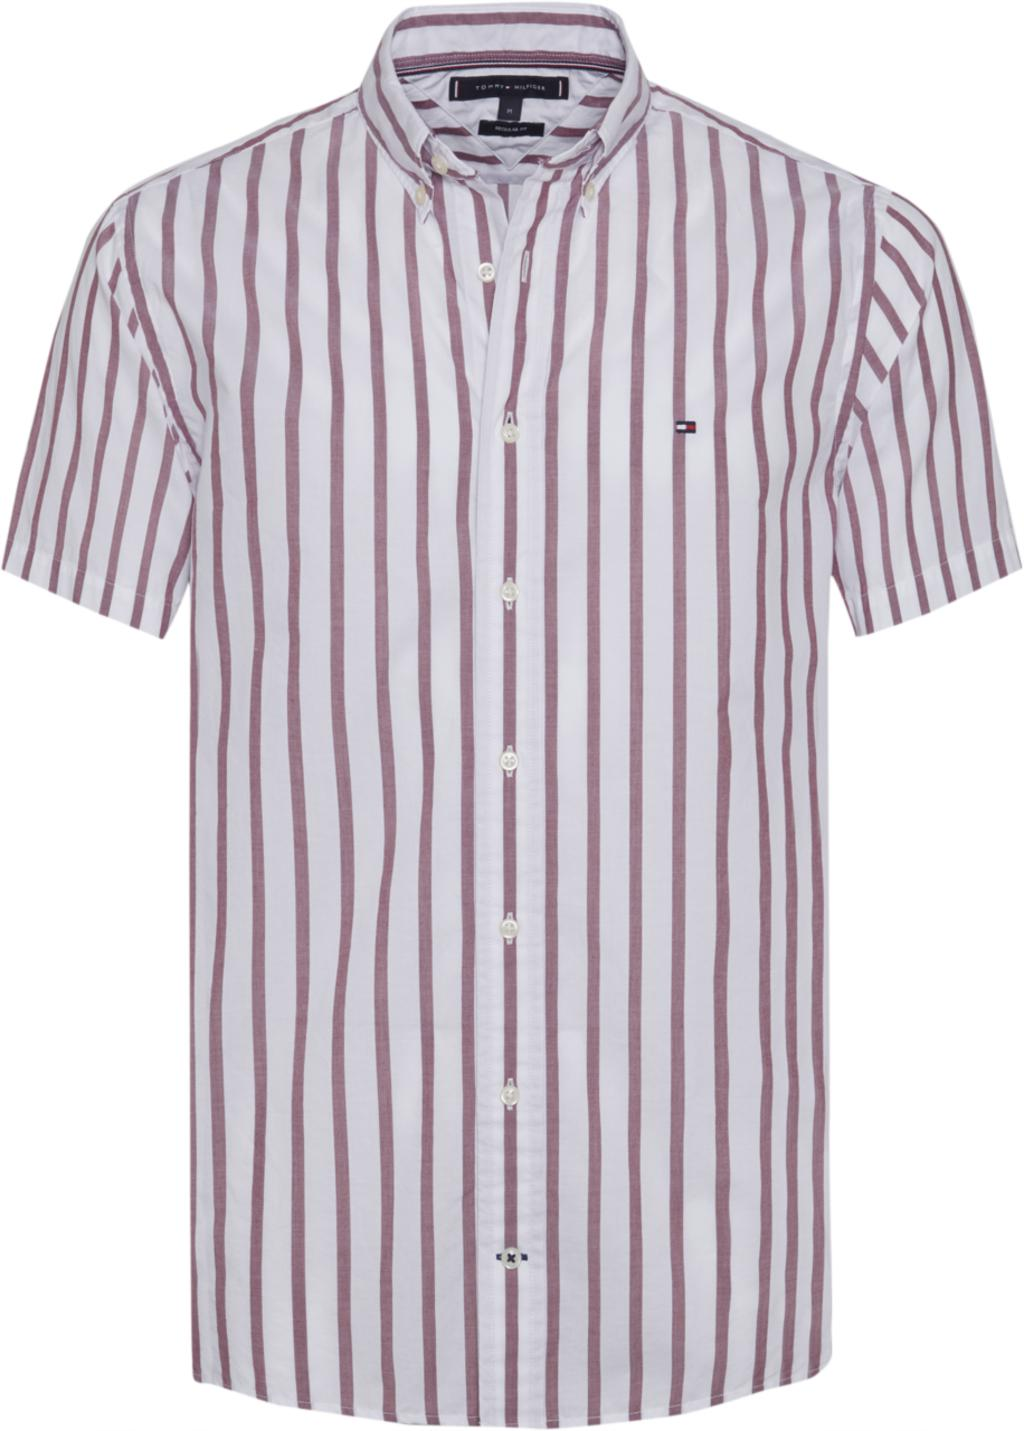 CAMISA PARA CABALLERO TOMMY HILFIGER MW0MW11014